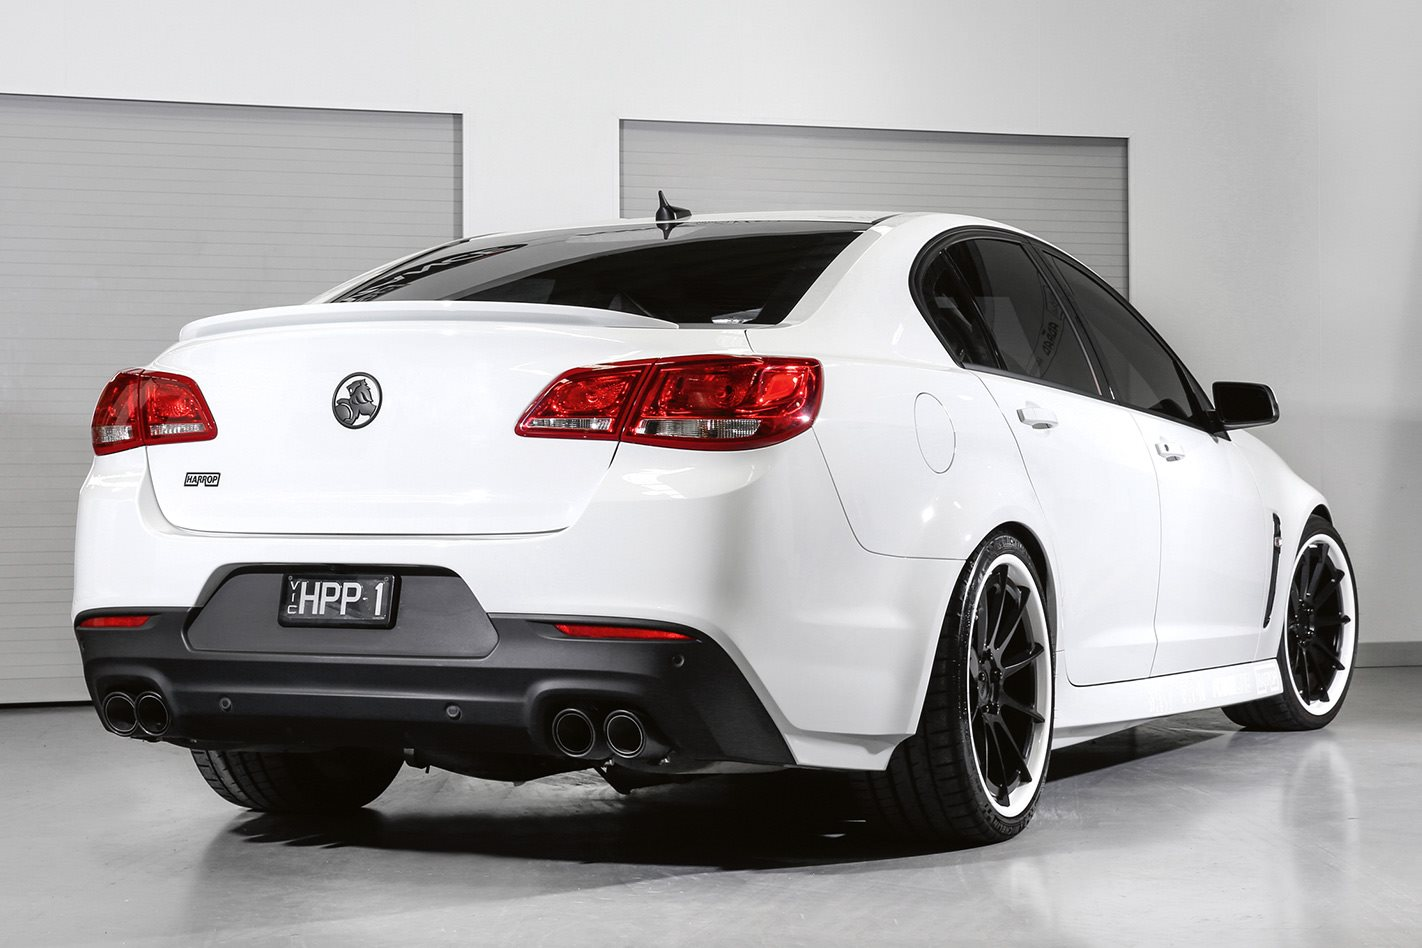 HARROP-MODIFIED HOLDEN COMMODORE VF SS